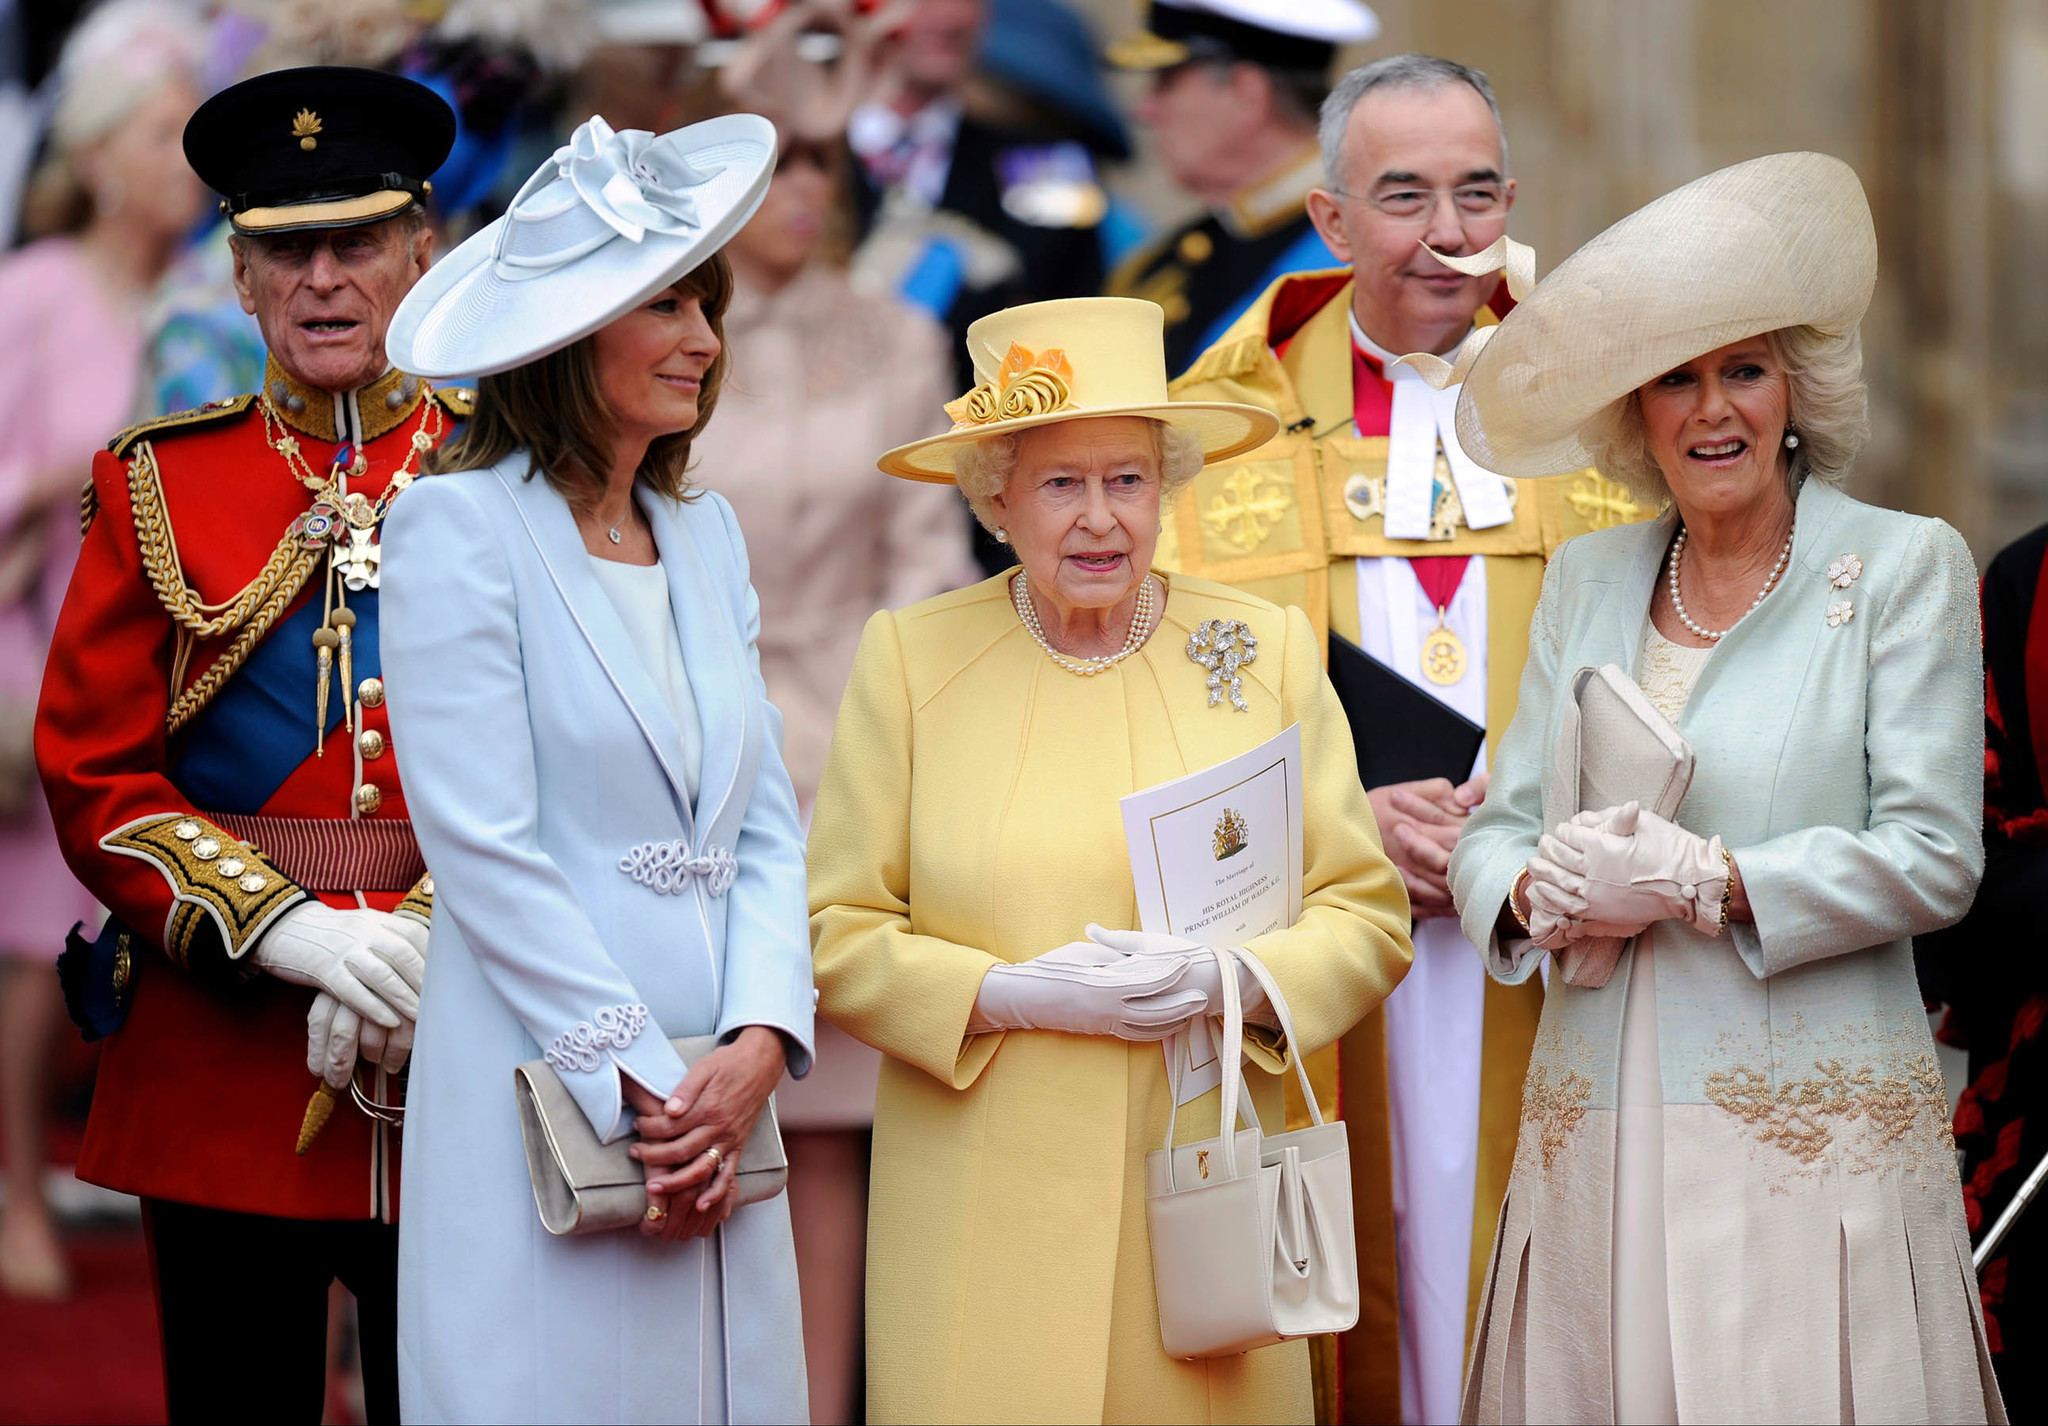 April 29, 2011: From left, Prince Phillip, Carole Middleton, Queen Elizabeth II and Camilla, Duchess